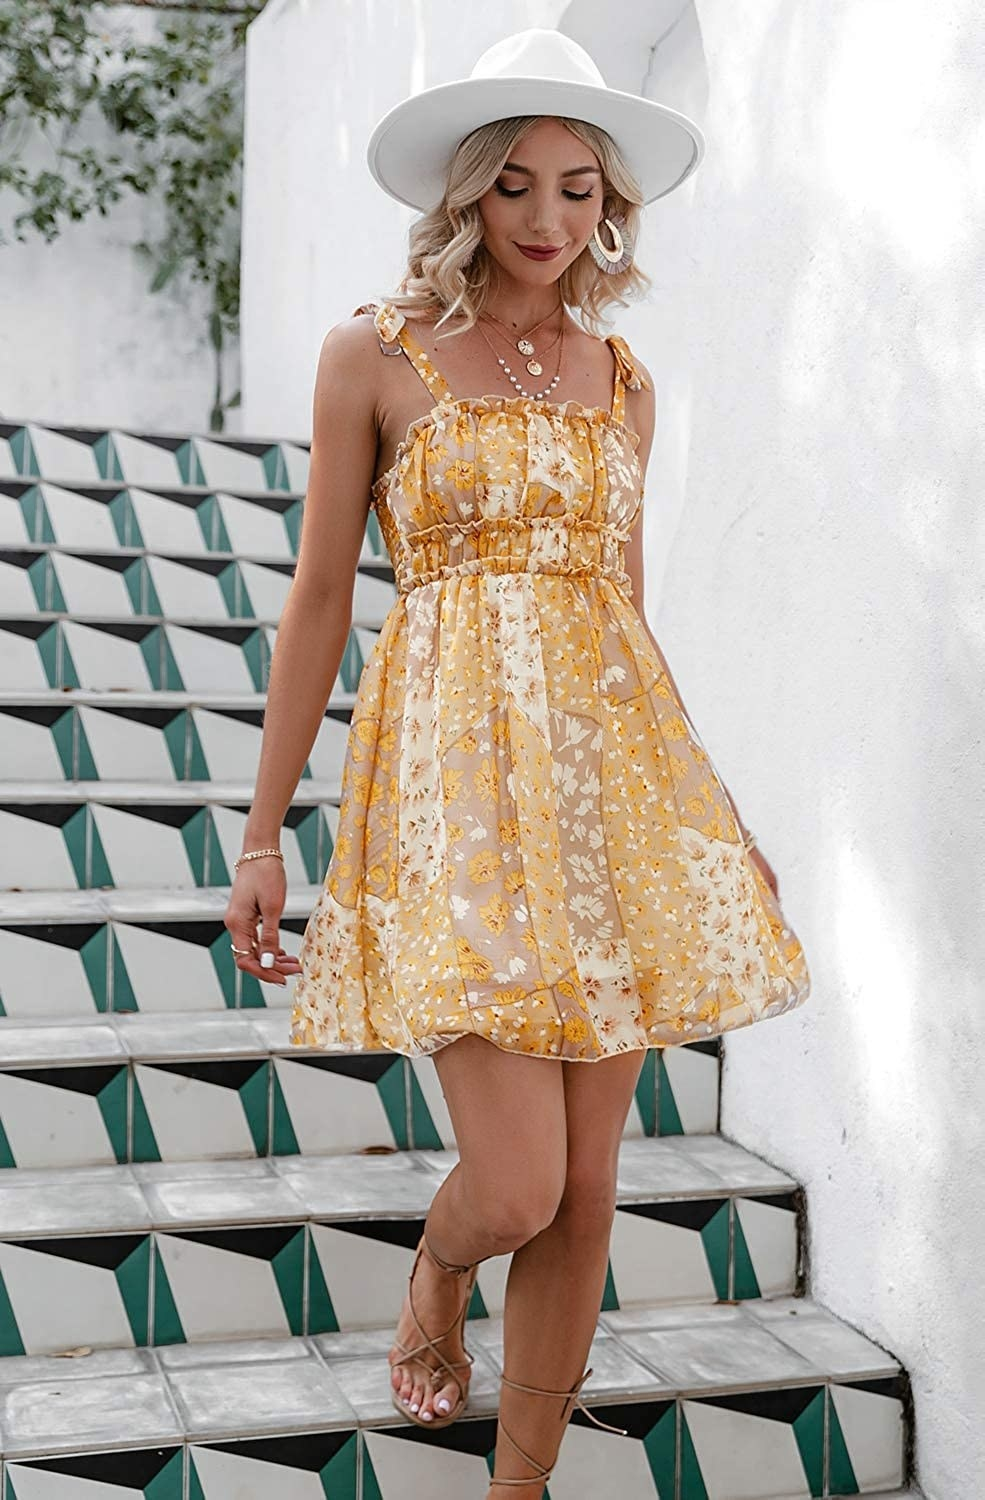 A model wearing the dress in B-yellow while walking down some stairs